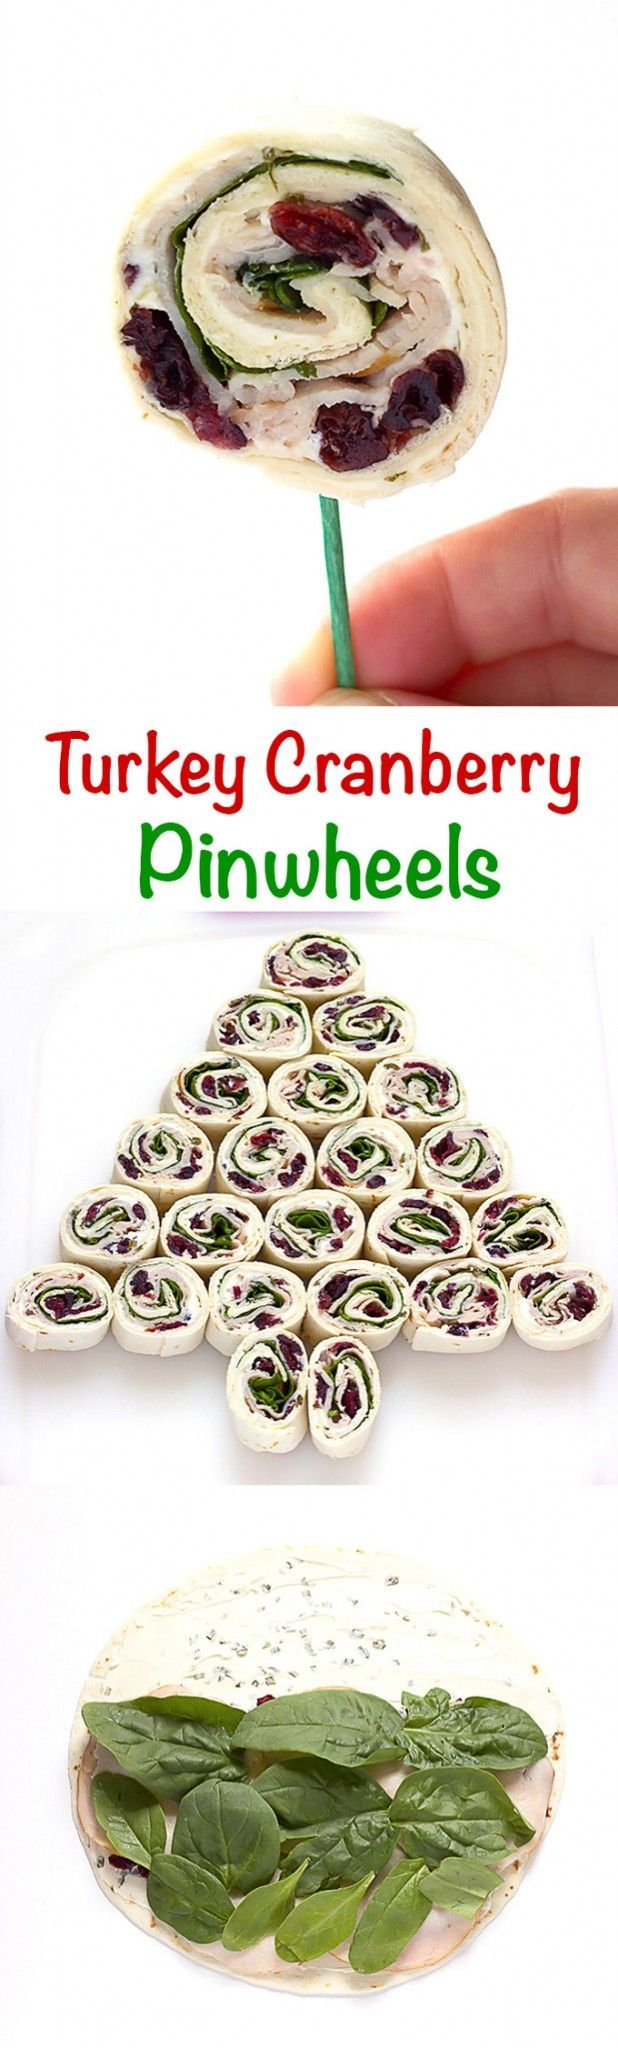 Had these at a pool party and they were DELICIOUS!  Turkey Cranberry Pinwheels - Seasoned cream cheese, dried cranberries, turkey, and spinach rolled up into pinwheels. Perfect #holiday #appetizer. They can even be arranged into the shape of a Christmas tree. #recipe